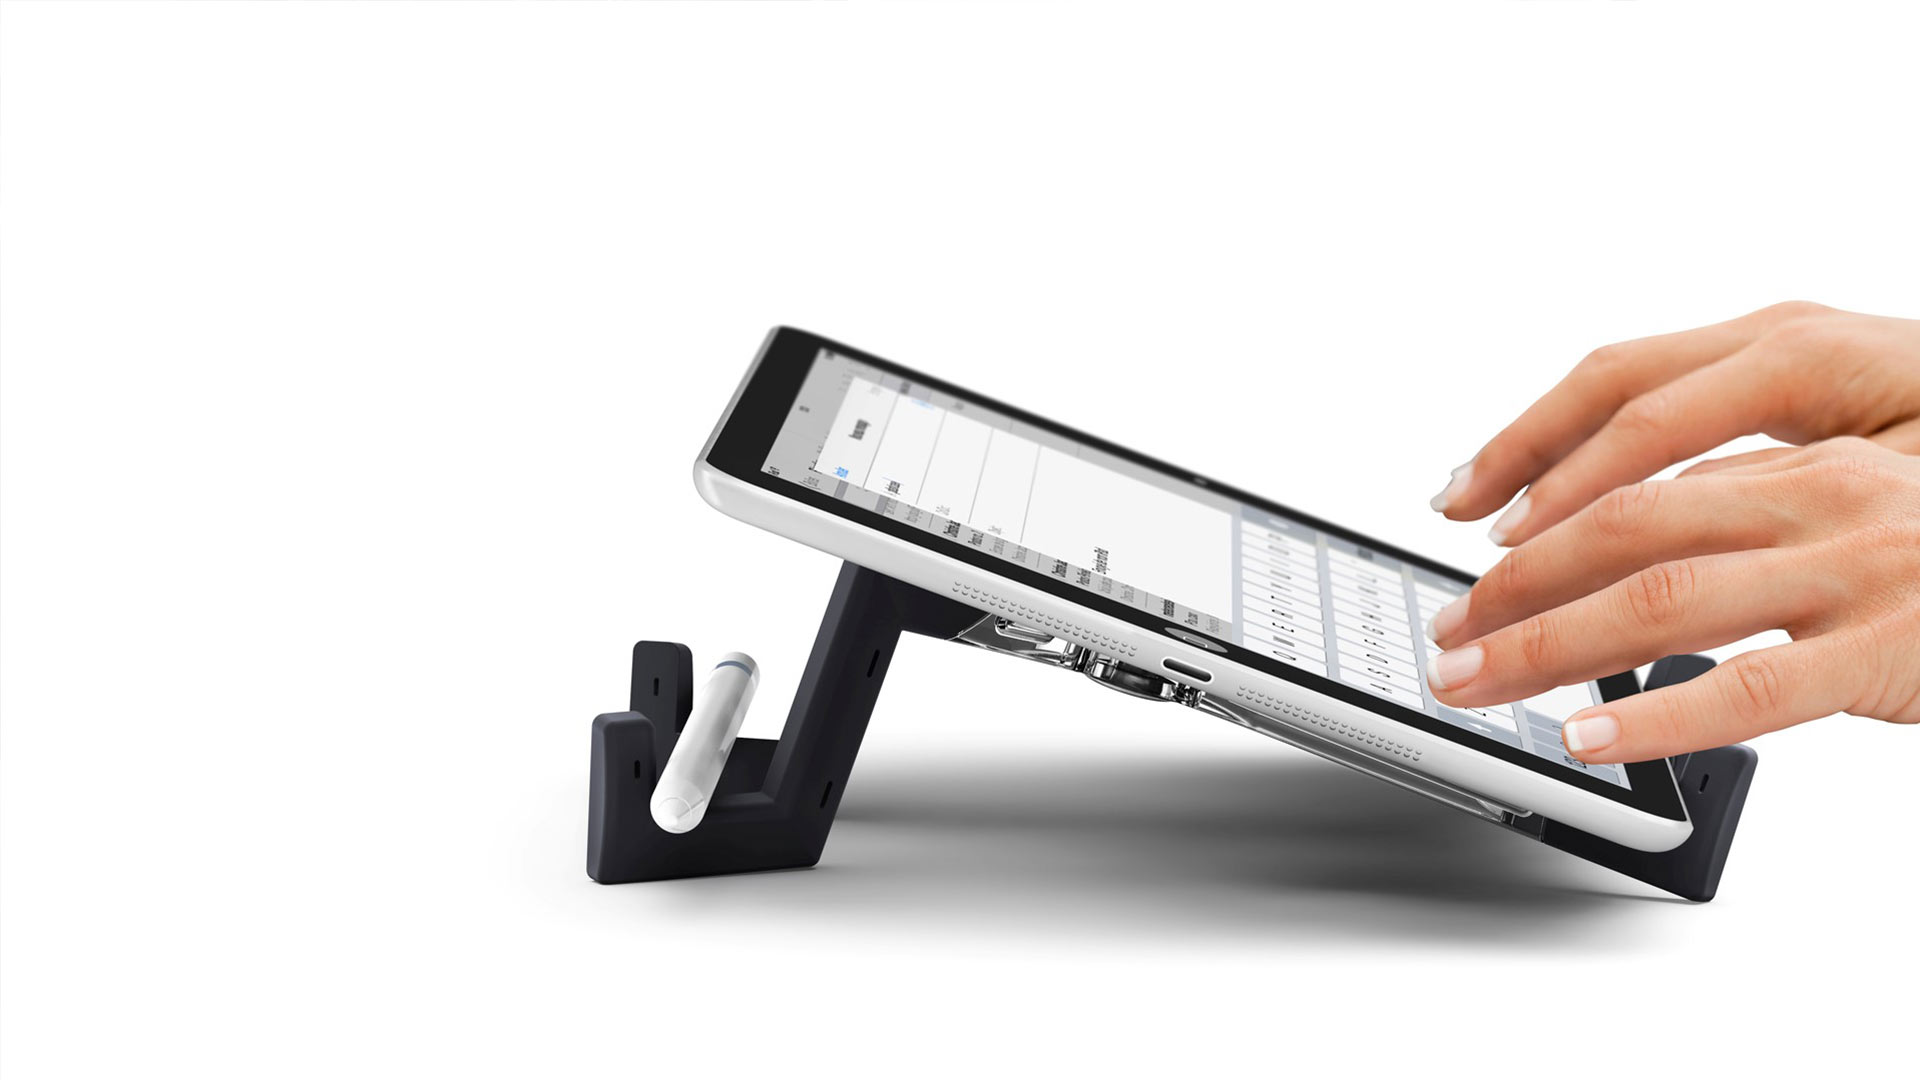 Keko Stand - Best Samsung & iPad Holder, Universal Tablet Stand